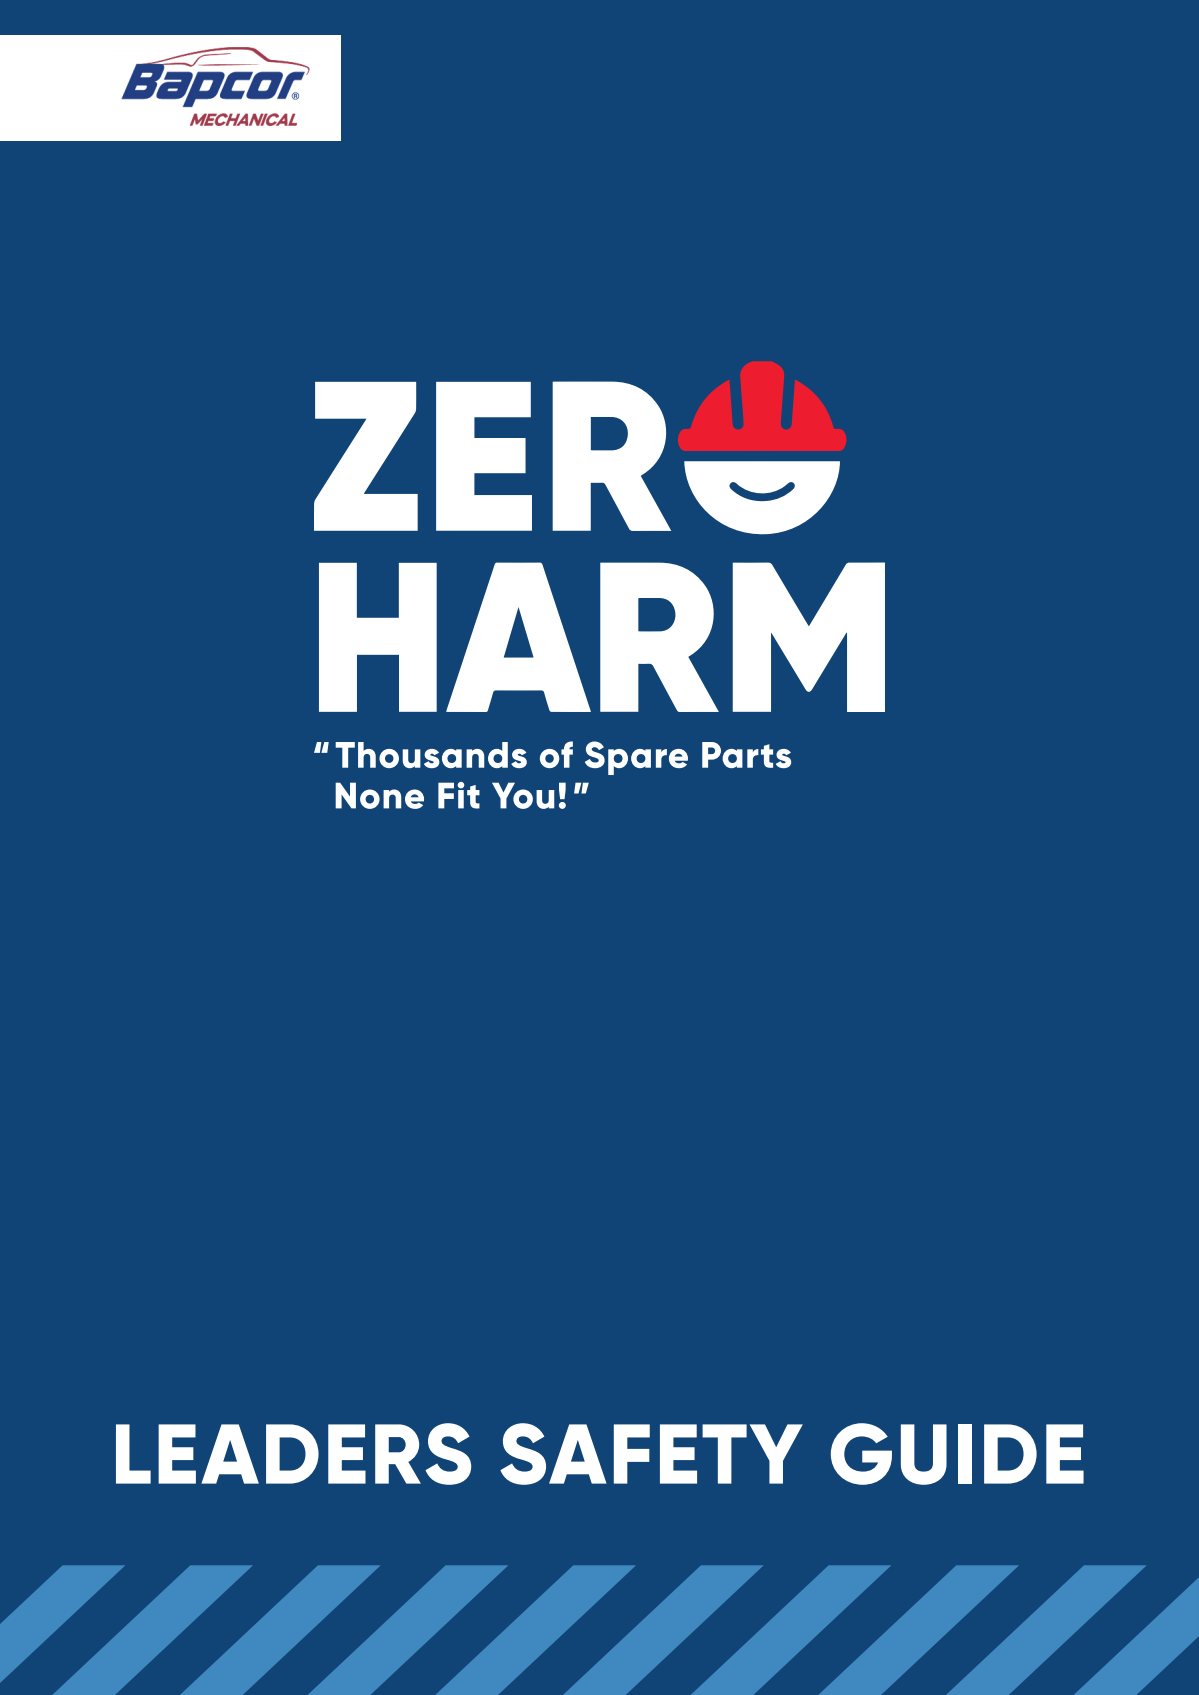 Zero Harm Safety Guide Document